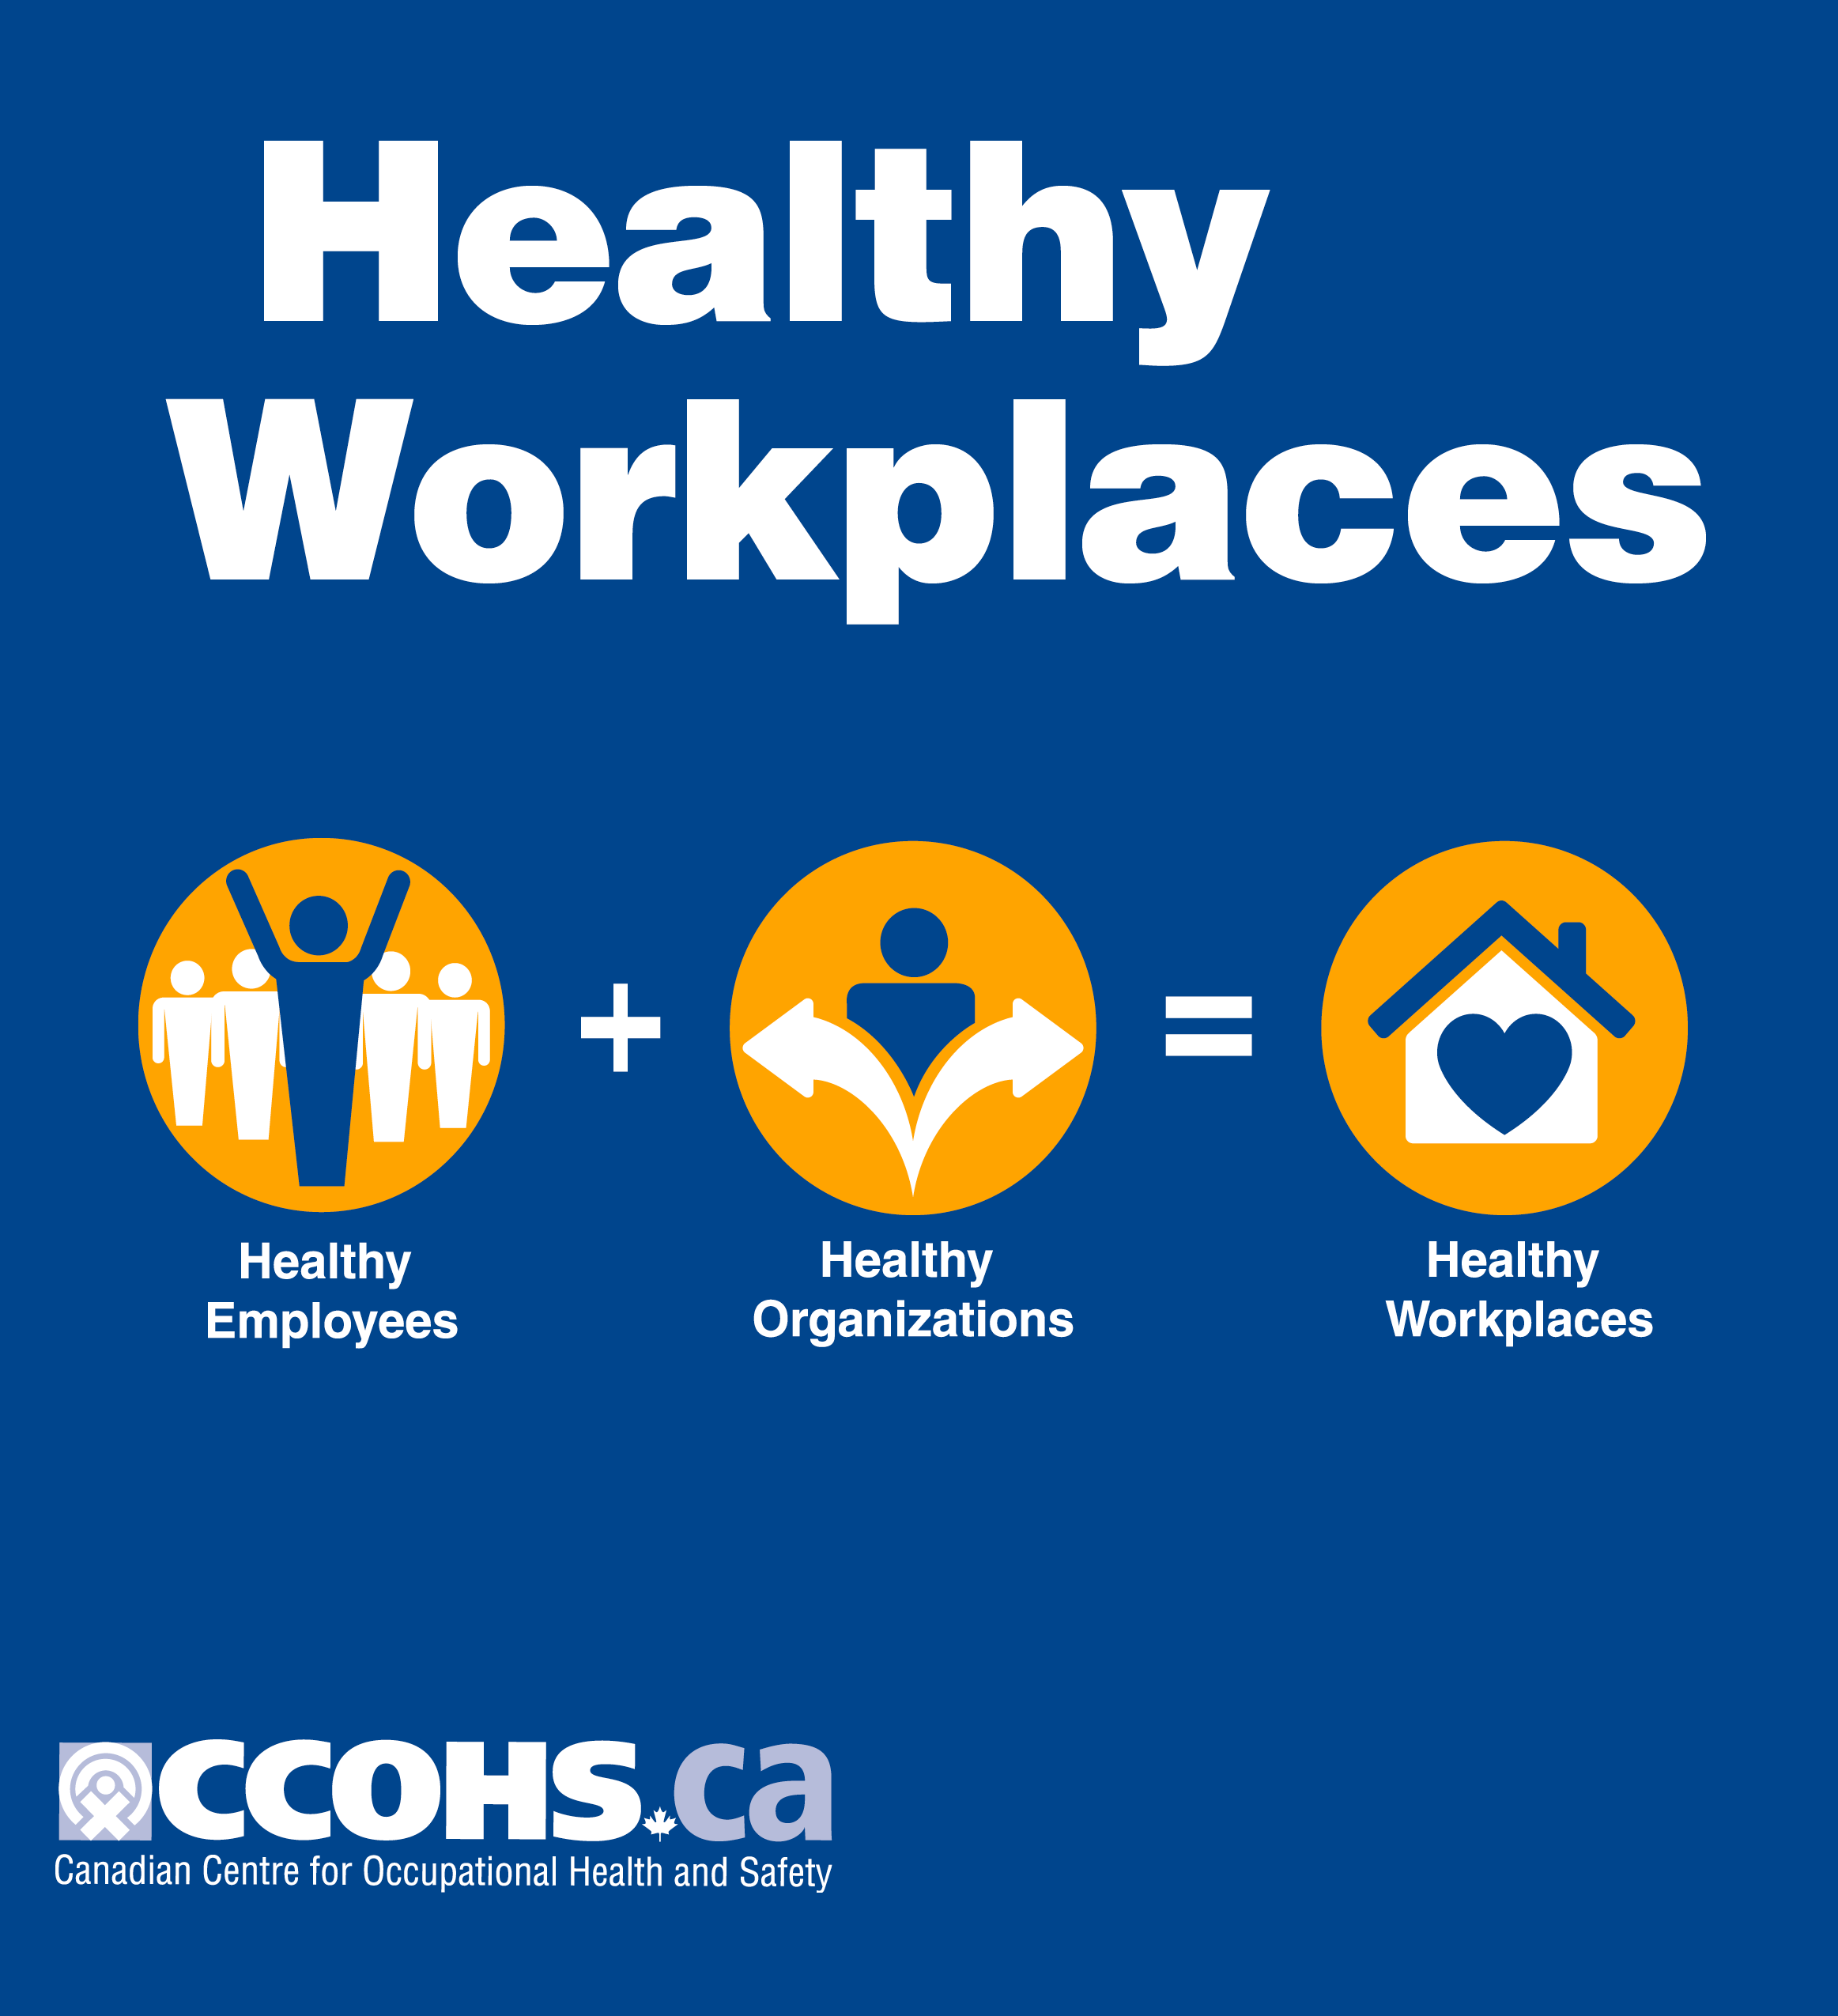 Healthy Workplaces poster's image